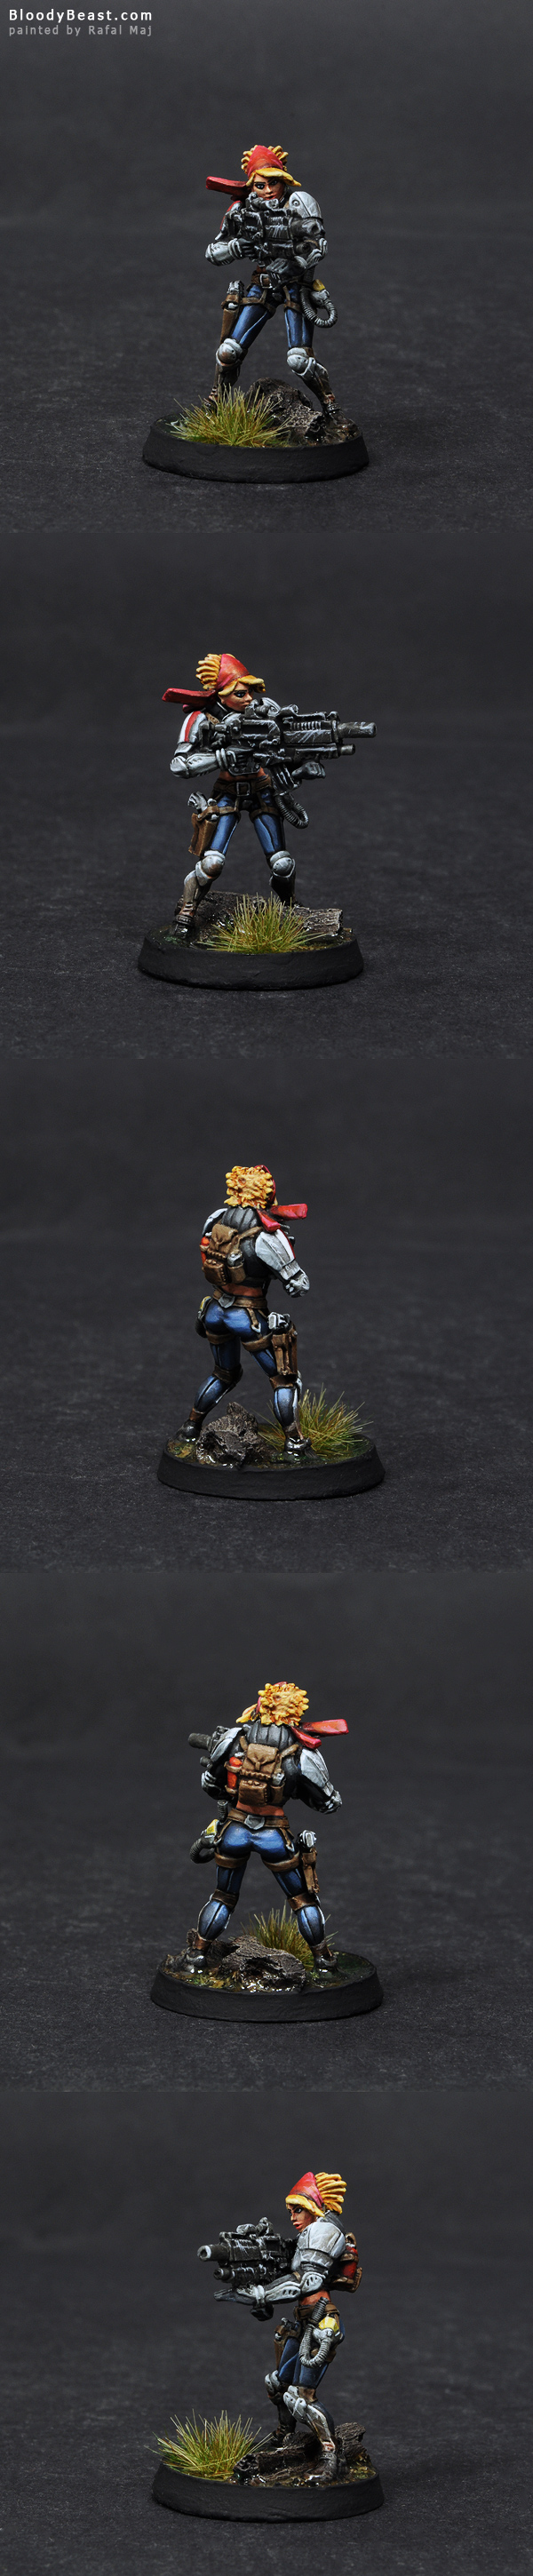 Ariadna Lieutenant Margot Berthier painted by Rafal Maj (BloodyBeast.com)